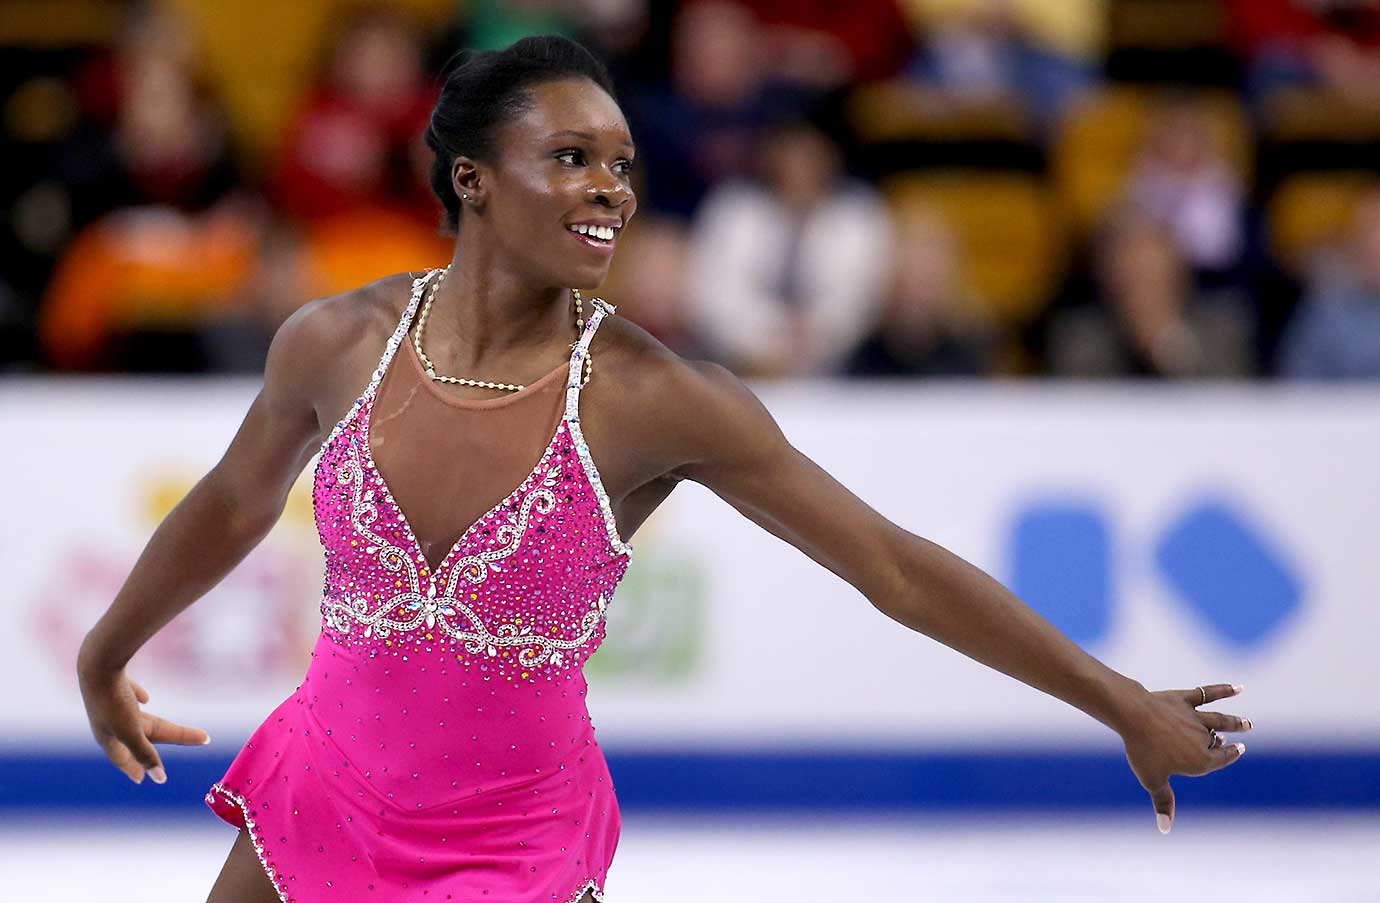 Mae Berenice Meite of France competes during Day 4 of the World Figure Skating Championships.